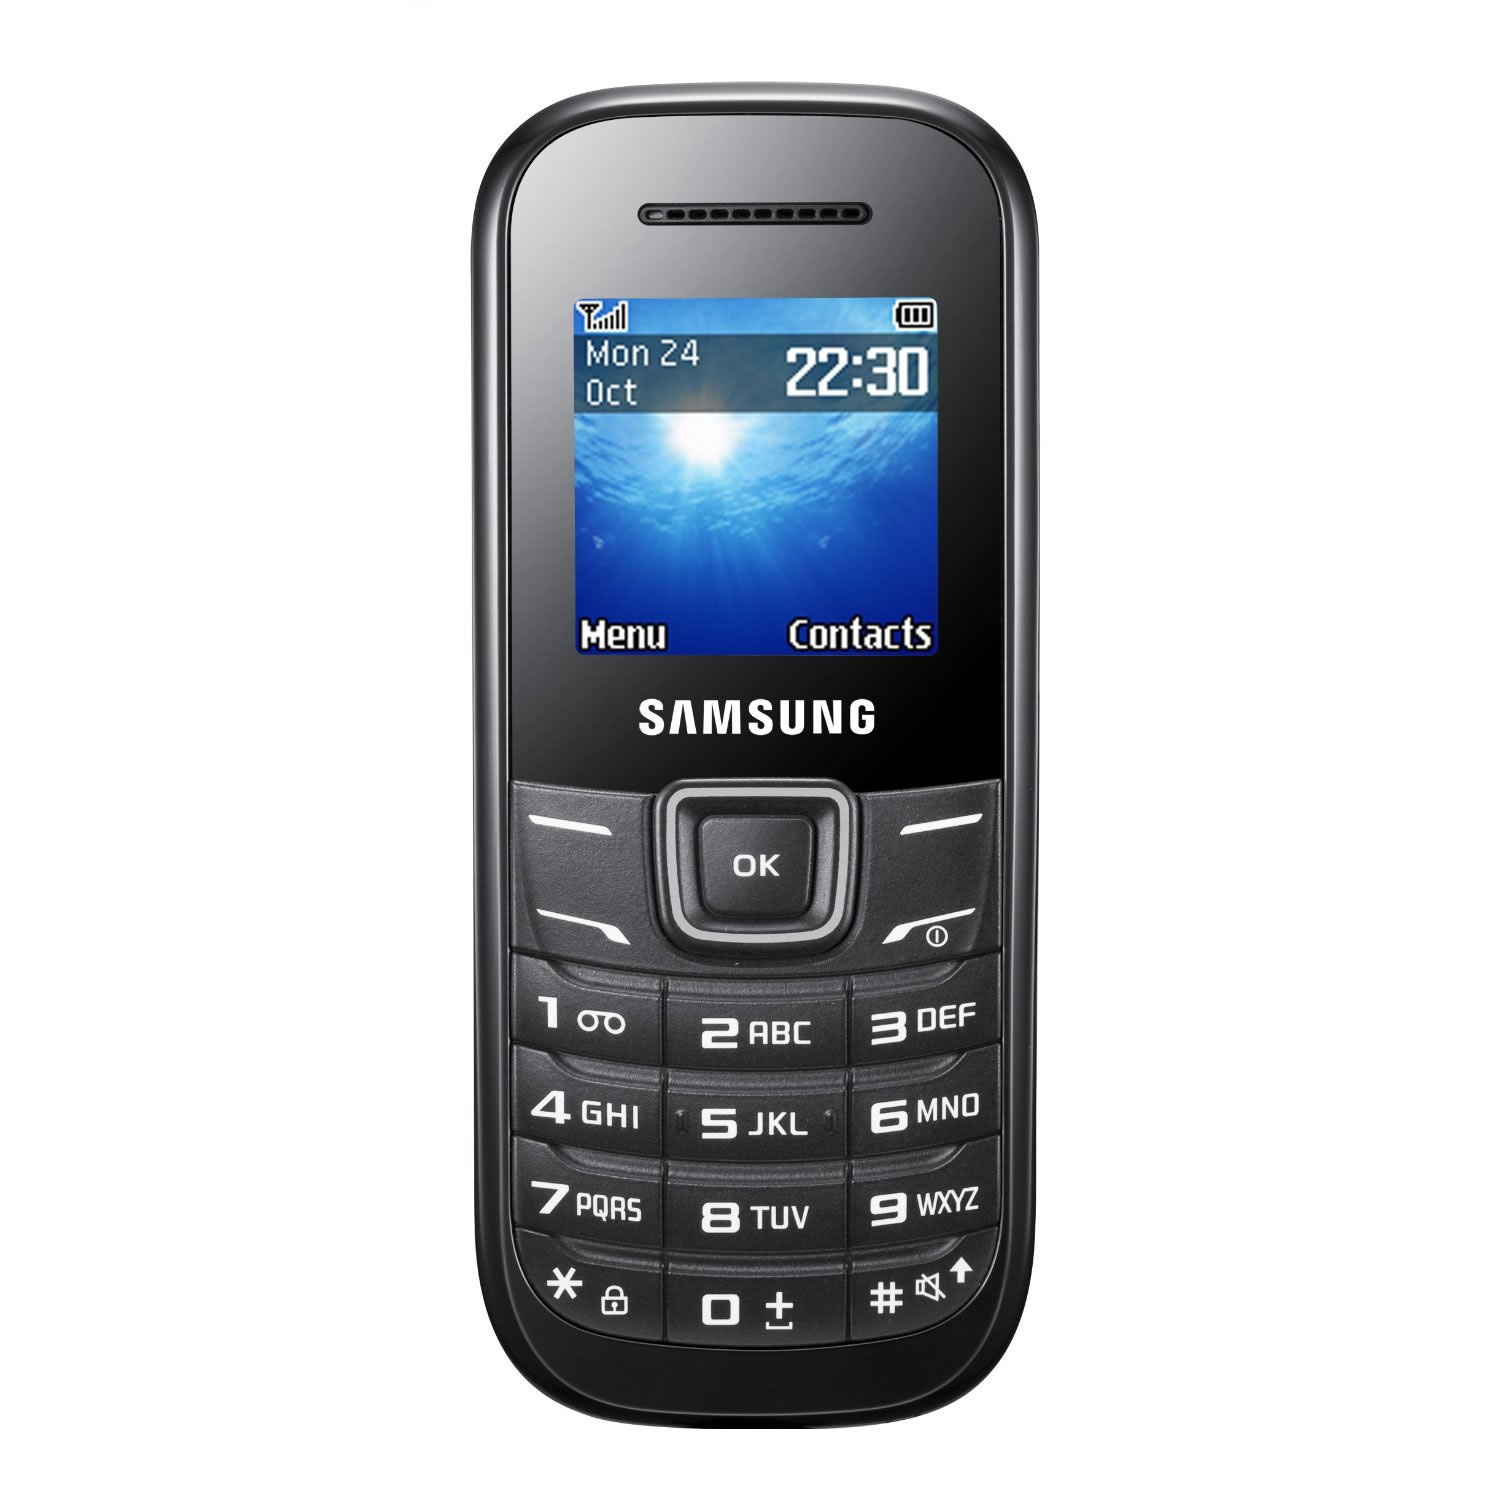 samsung e1200 black mobile phone unlocked sim free cheap. Black Bedroom Furniture Sets. Home Design Ideas